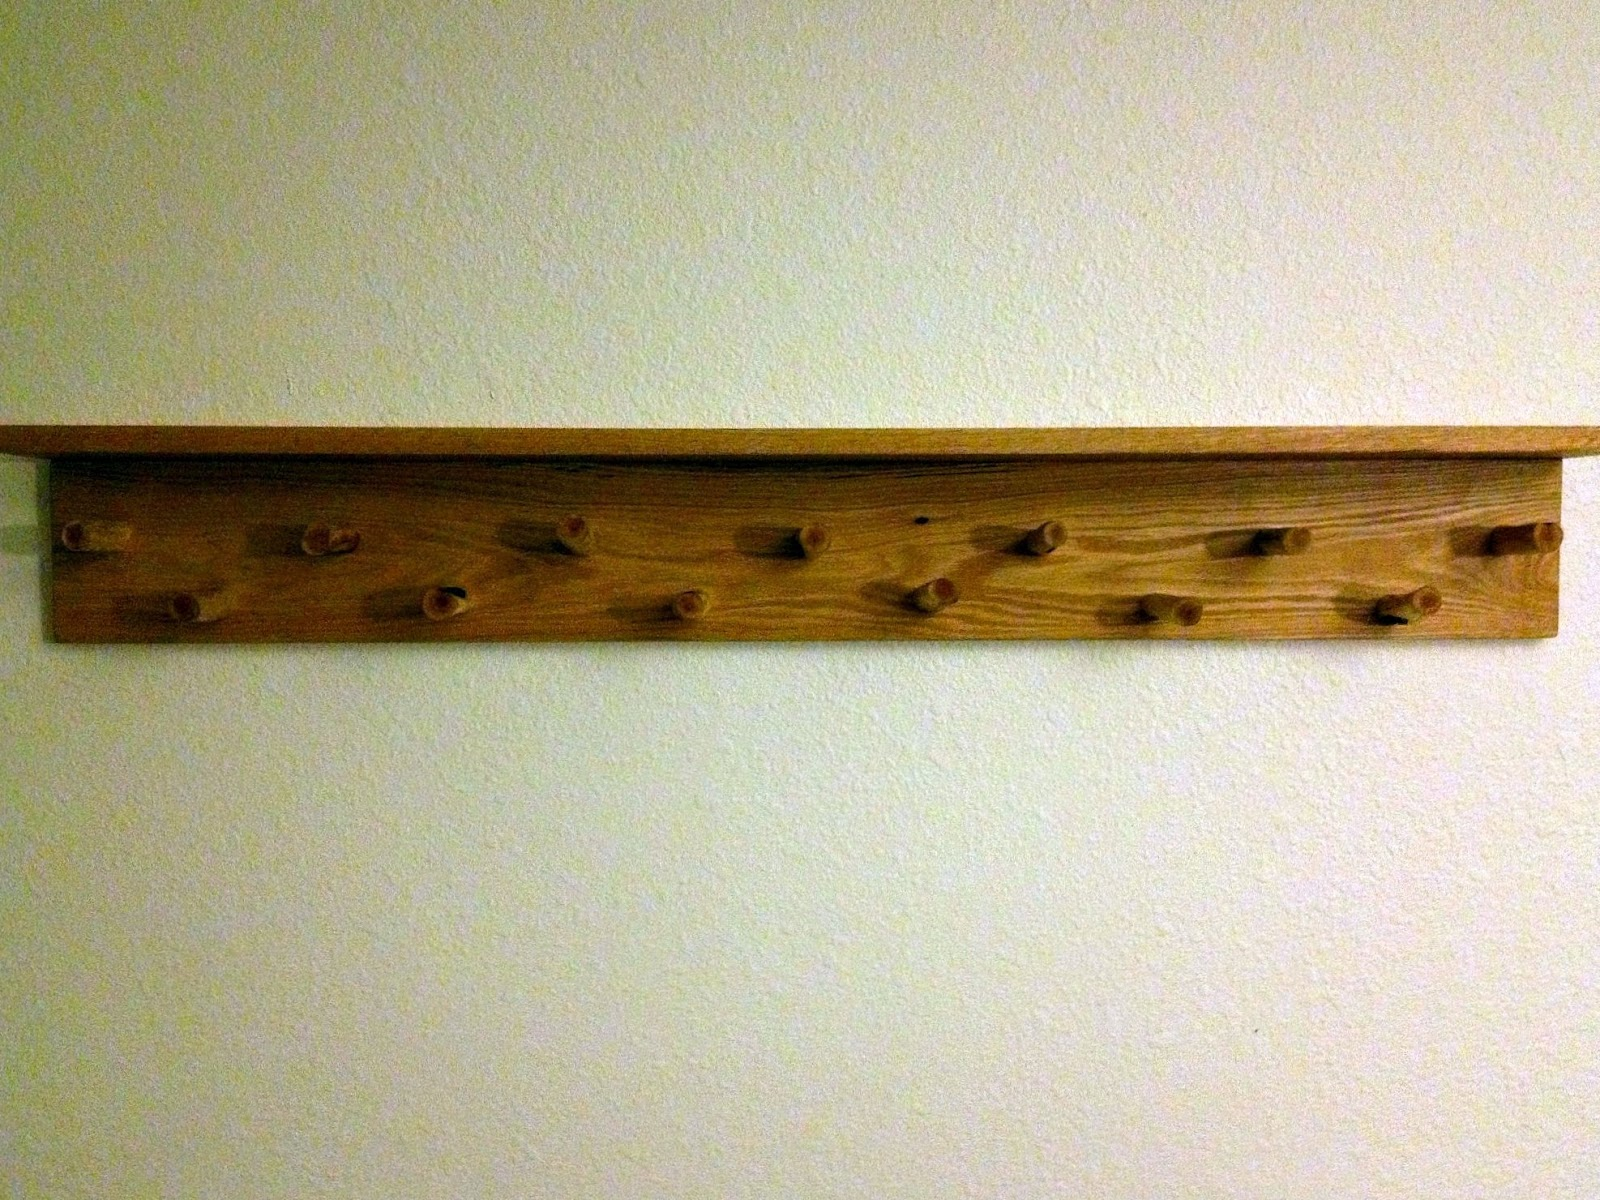 the modern diy life diy wall hanging coat rack - coat rack mounted on the wall